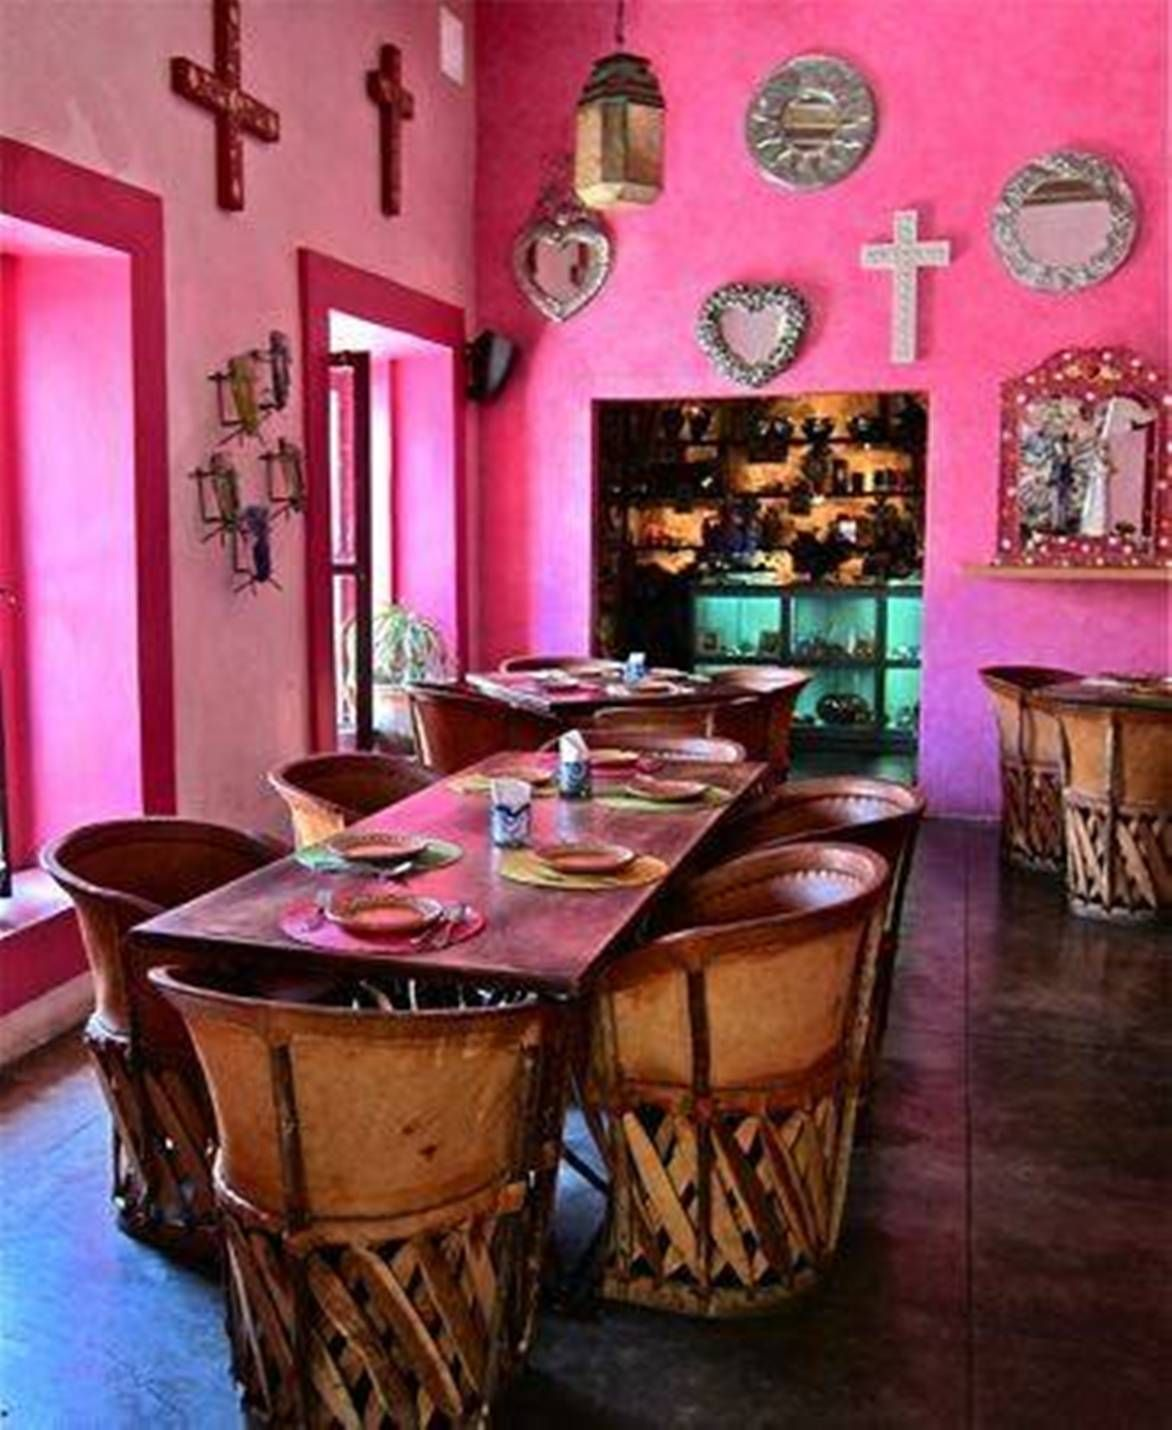 Home designs and decor mexican house interior pink - Mexican home decor ideas ...